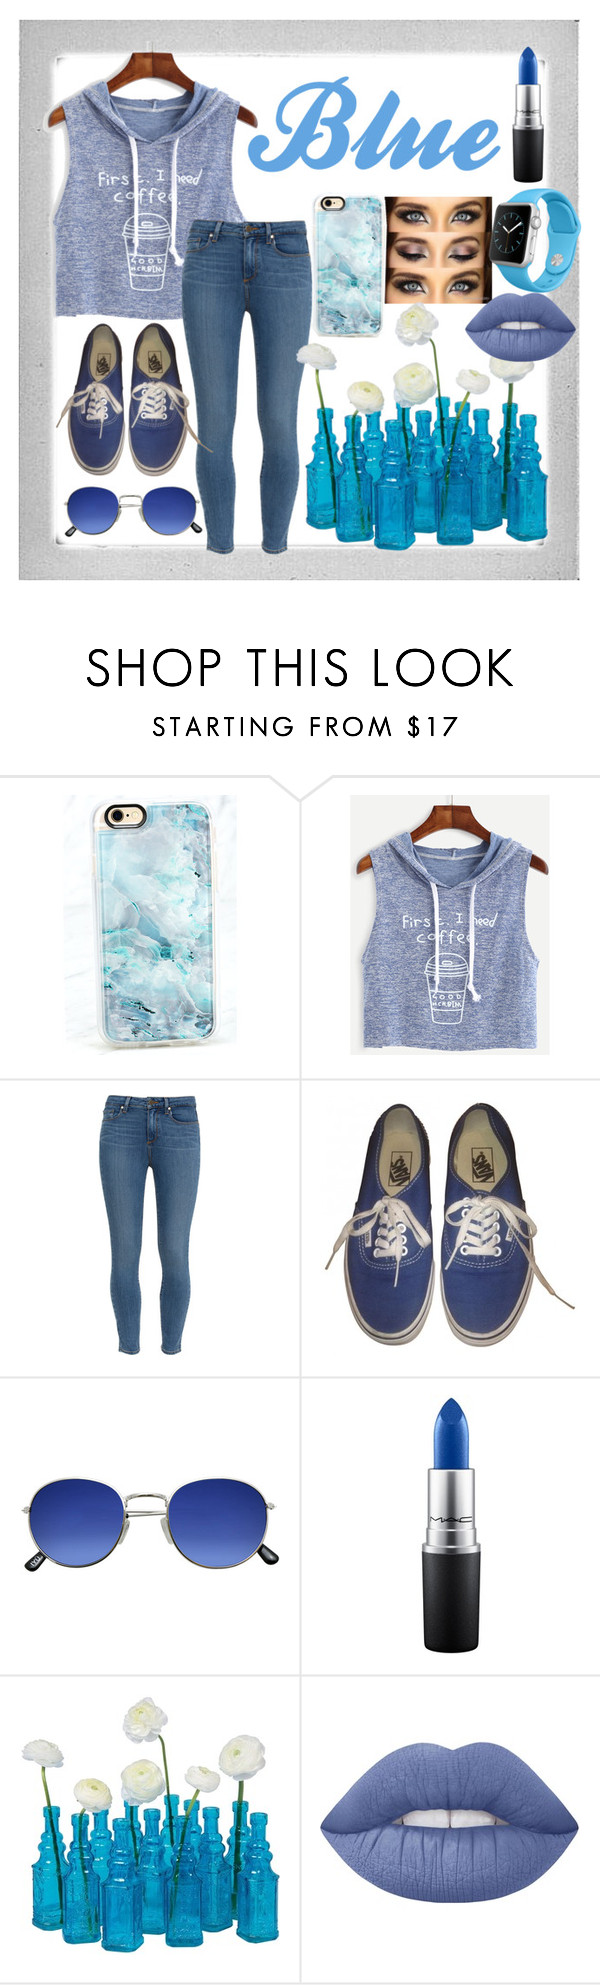 """""""Beautiful Blue Day🌾💙"""" by savanaherron ❤ liked on Polyvore featuring Polaroid, Casetify, WithChic, Paige Denim, Vans, MAC Cosmetics, Cultural Intrigue, Lime Crime and Apple"""